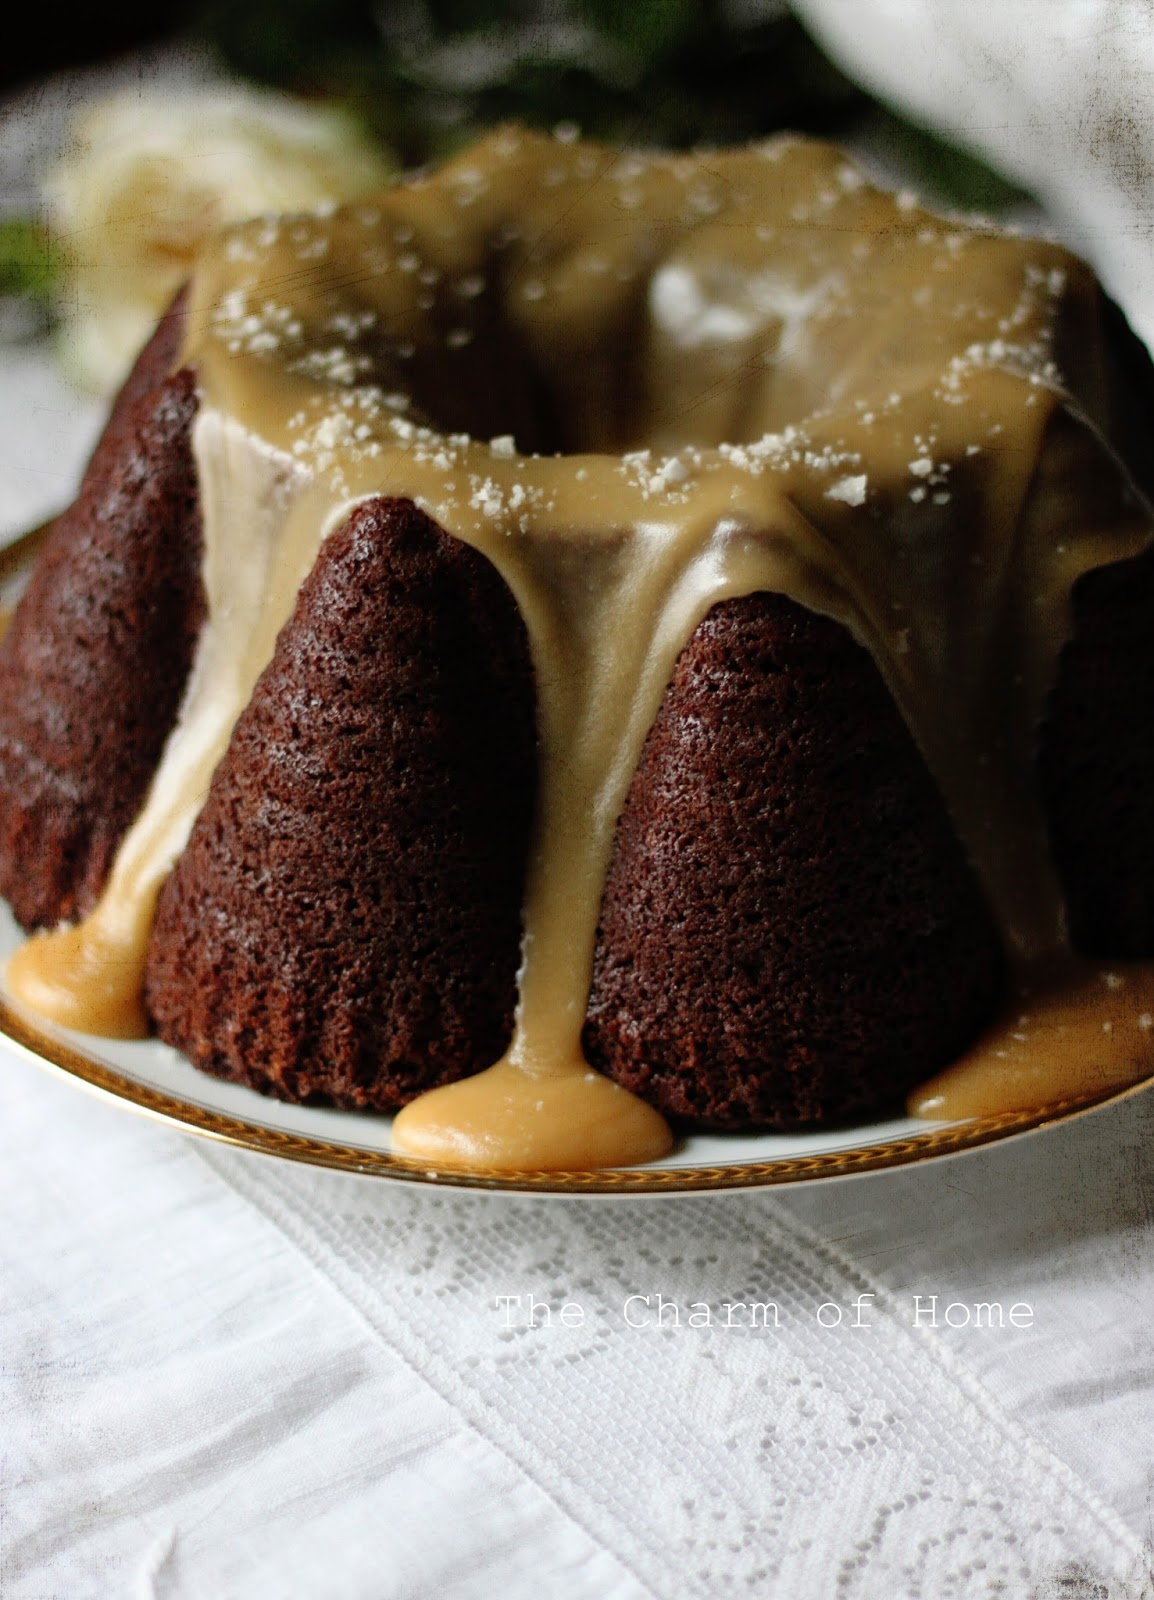 Guinness Chocolate Cake with a Salted Caramel Glaze